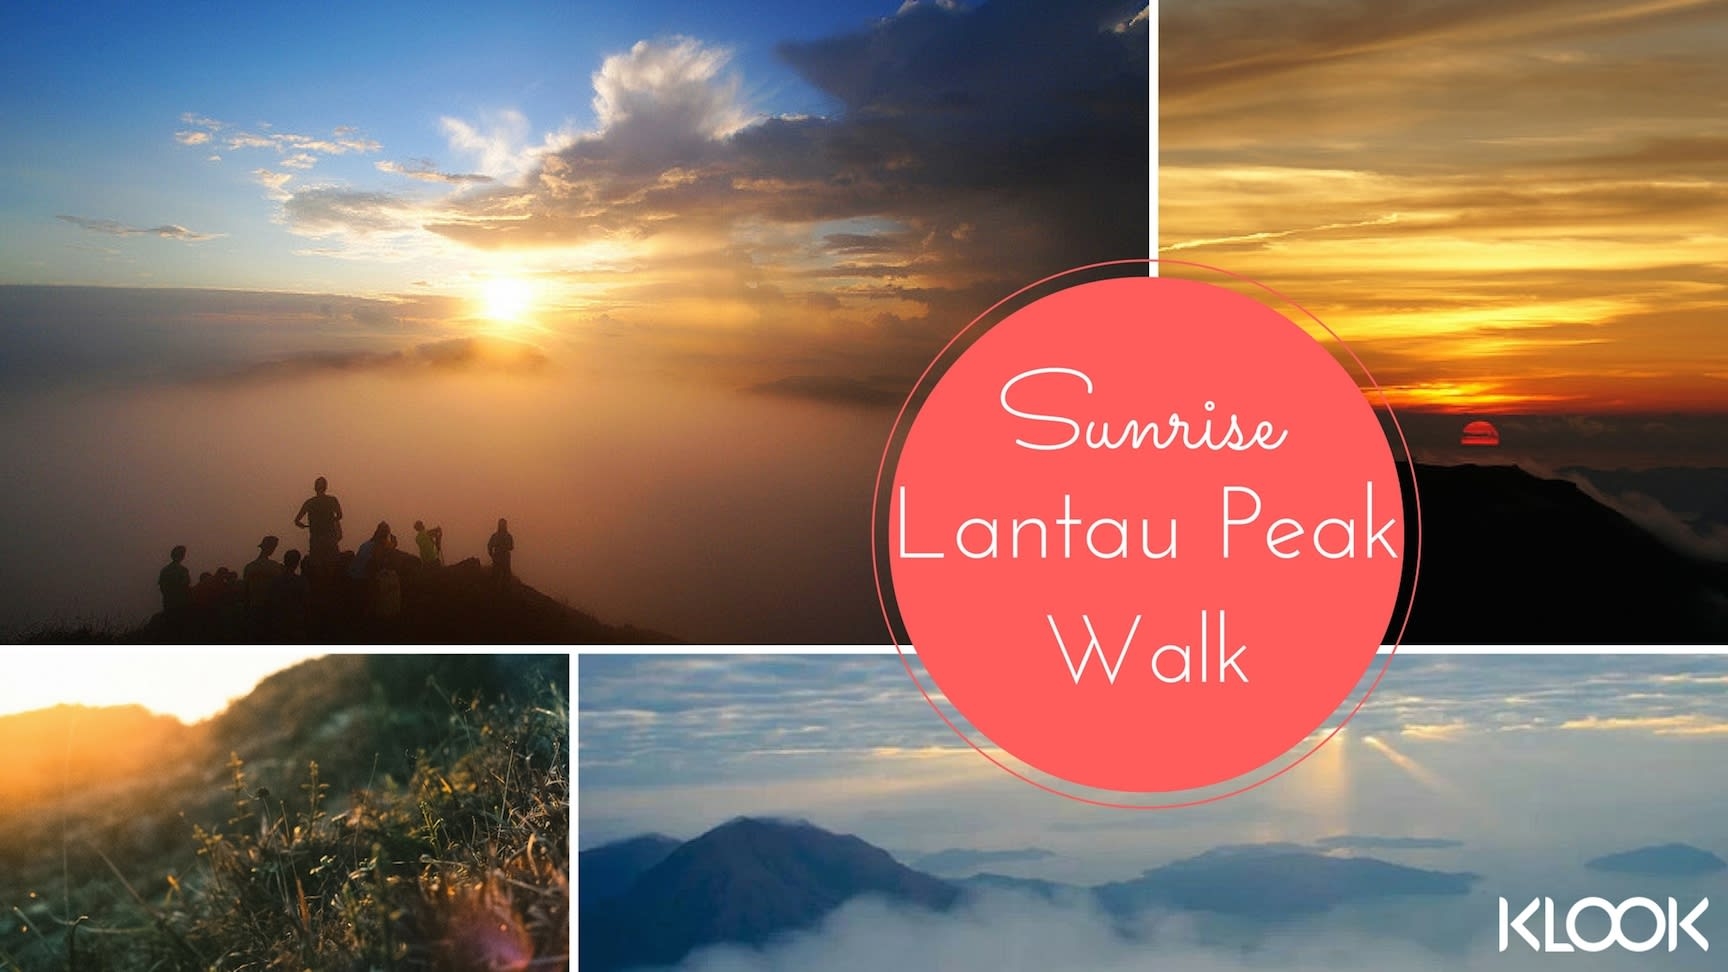 hiking, hiking trail, hiking in hong kong, hiking with lover, hiking with boyfriend, hiking with girlfriend, Lantau Peak, Fung Wong Shan, Lantau Peak sunrise, sunrise in hong kong